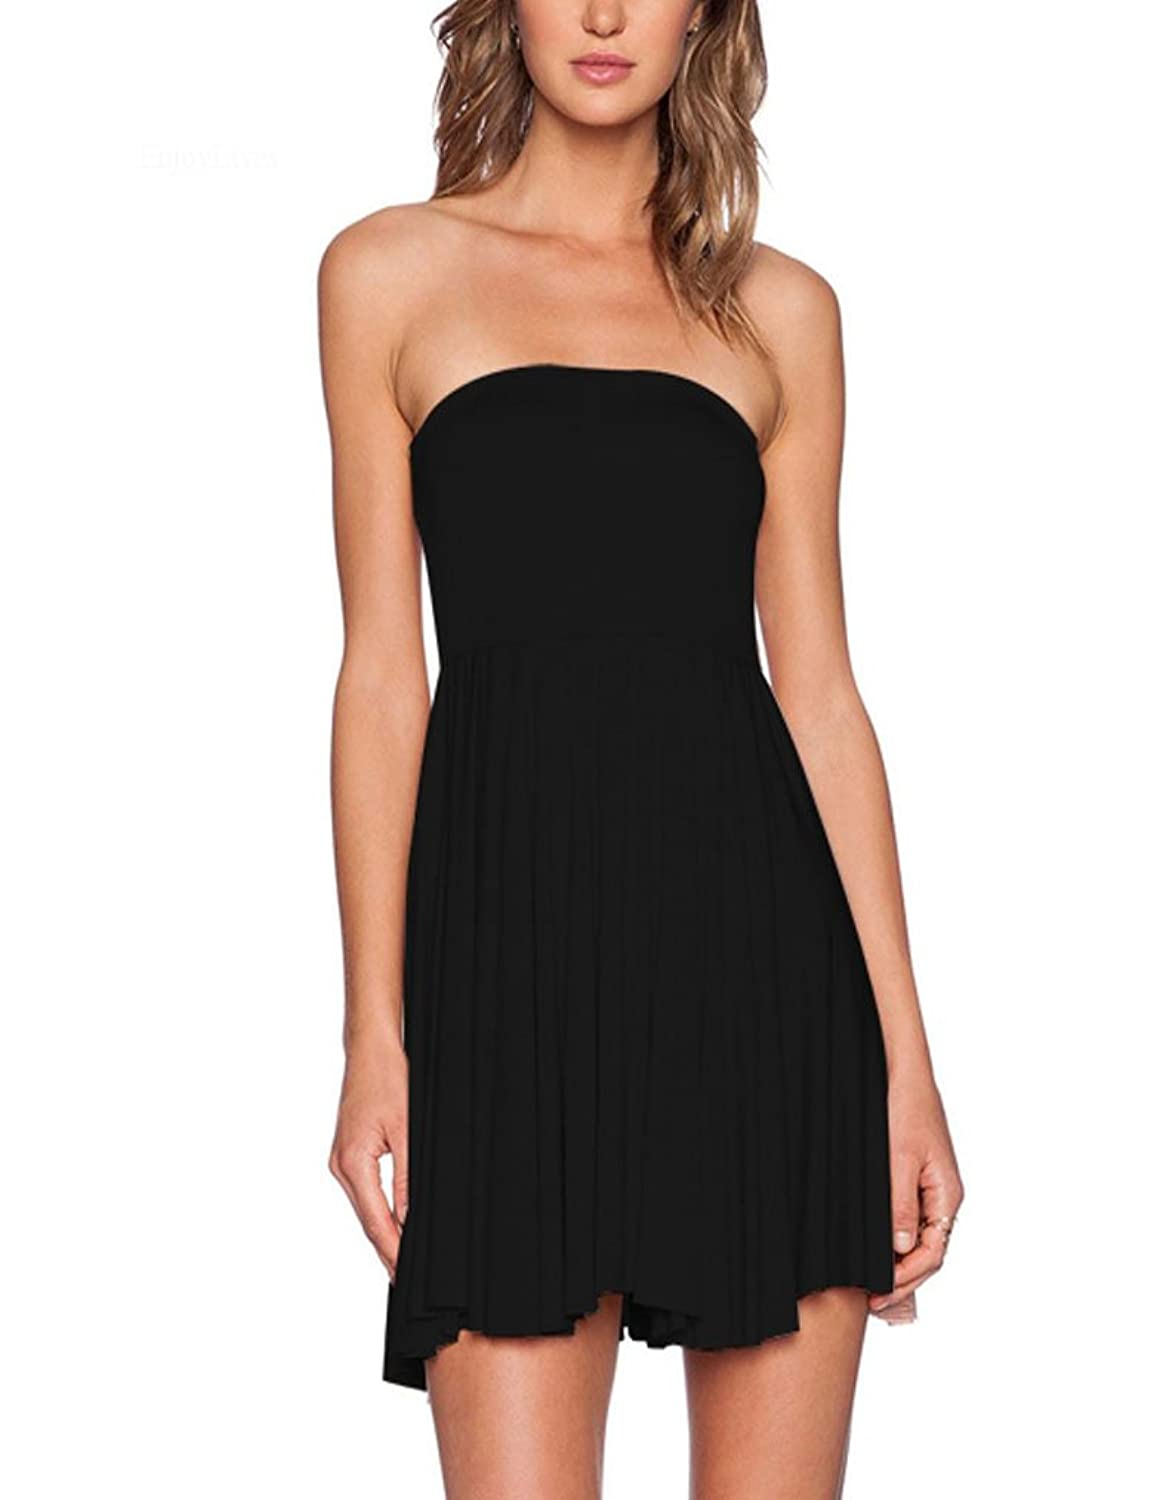 Locry Women鈥檚 Summer Sexy Solid Stretchy Pleated Mini Beach Tube Dress